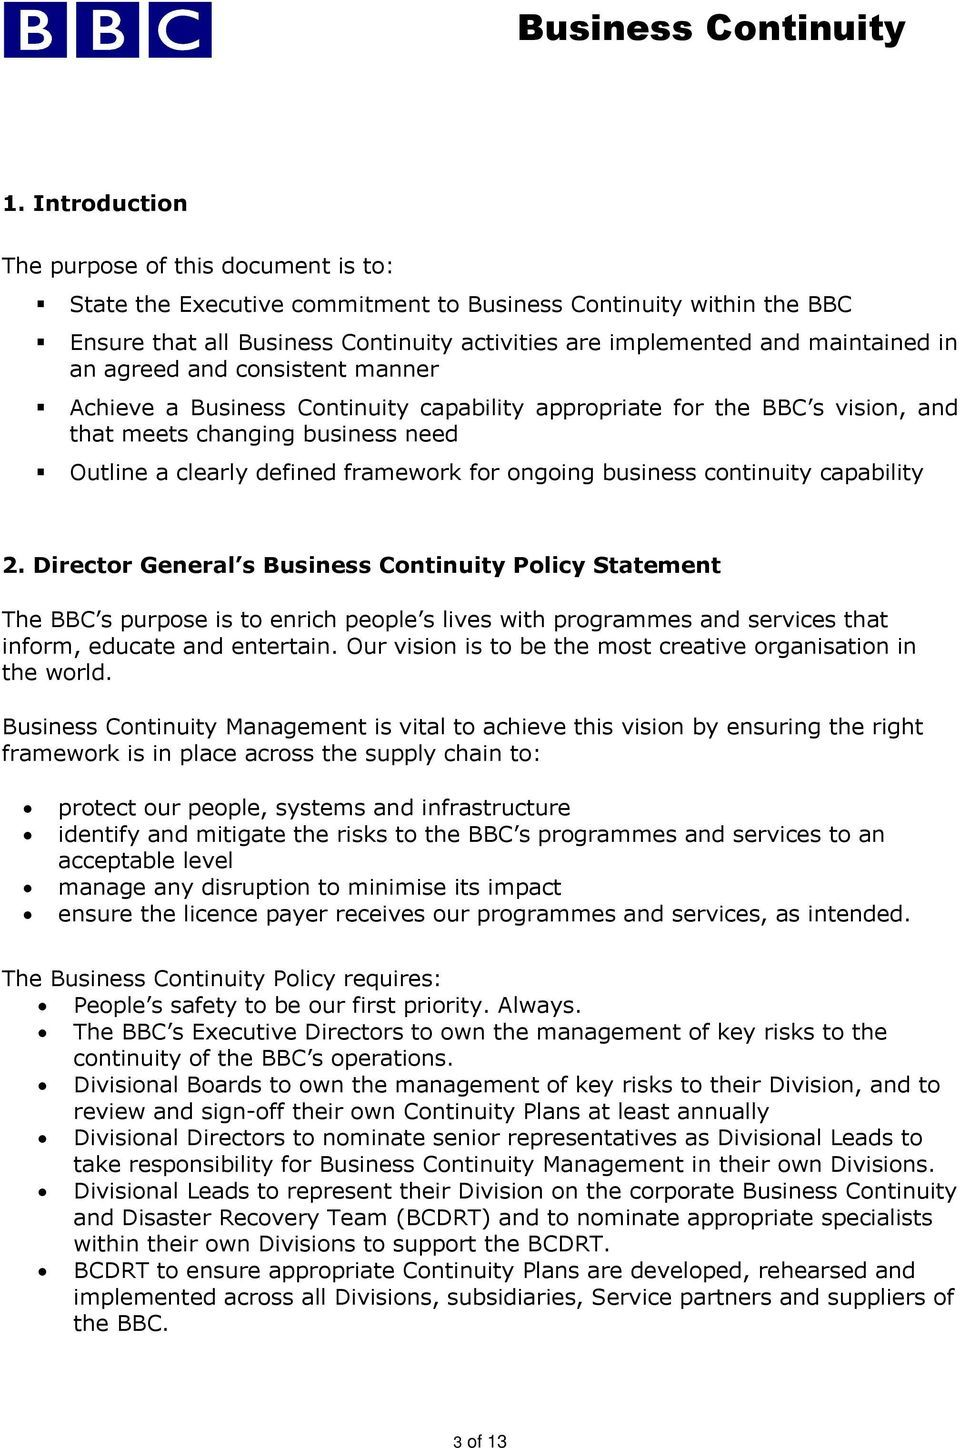 The excellent Business Continuity Management Policy Pdf